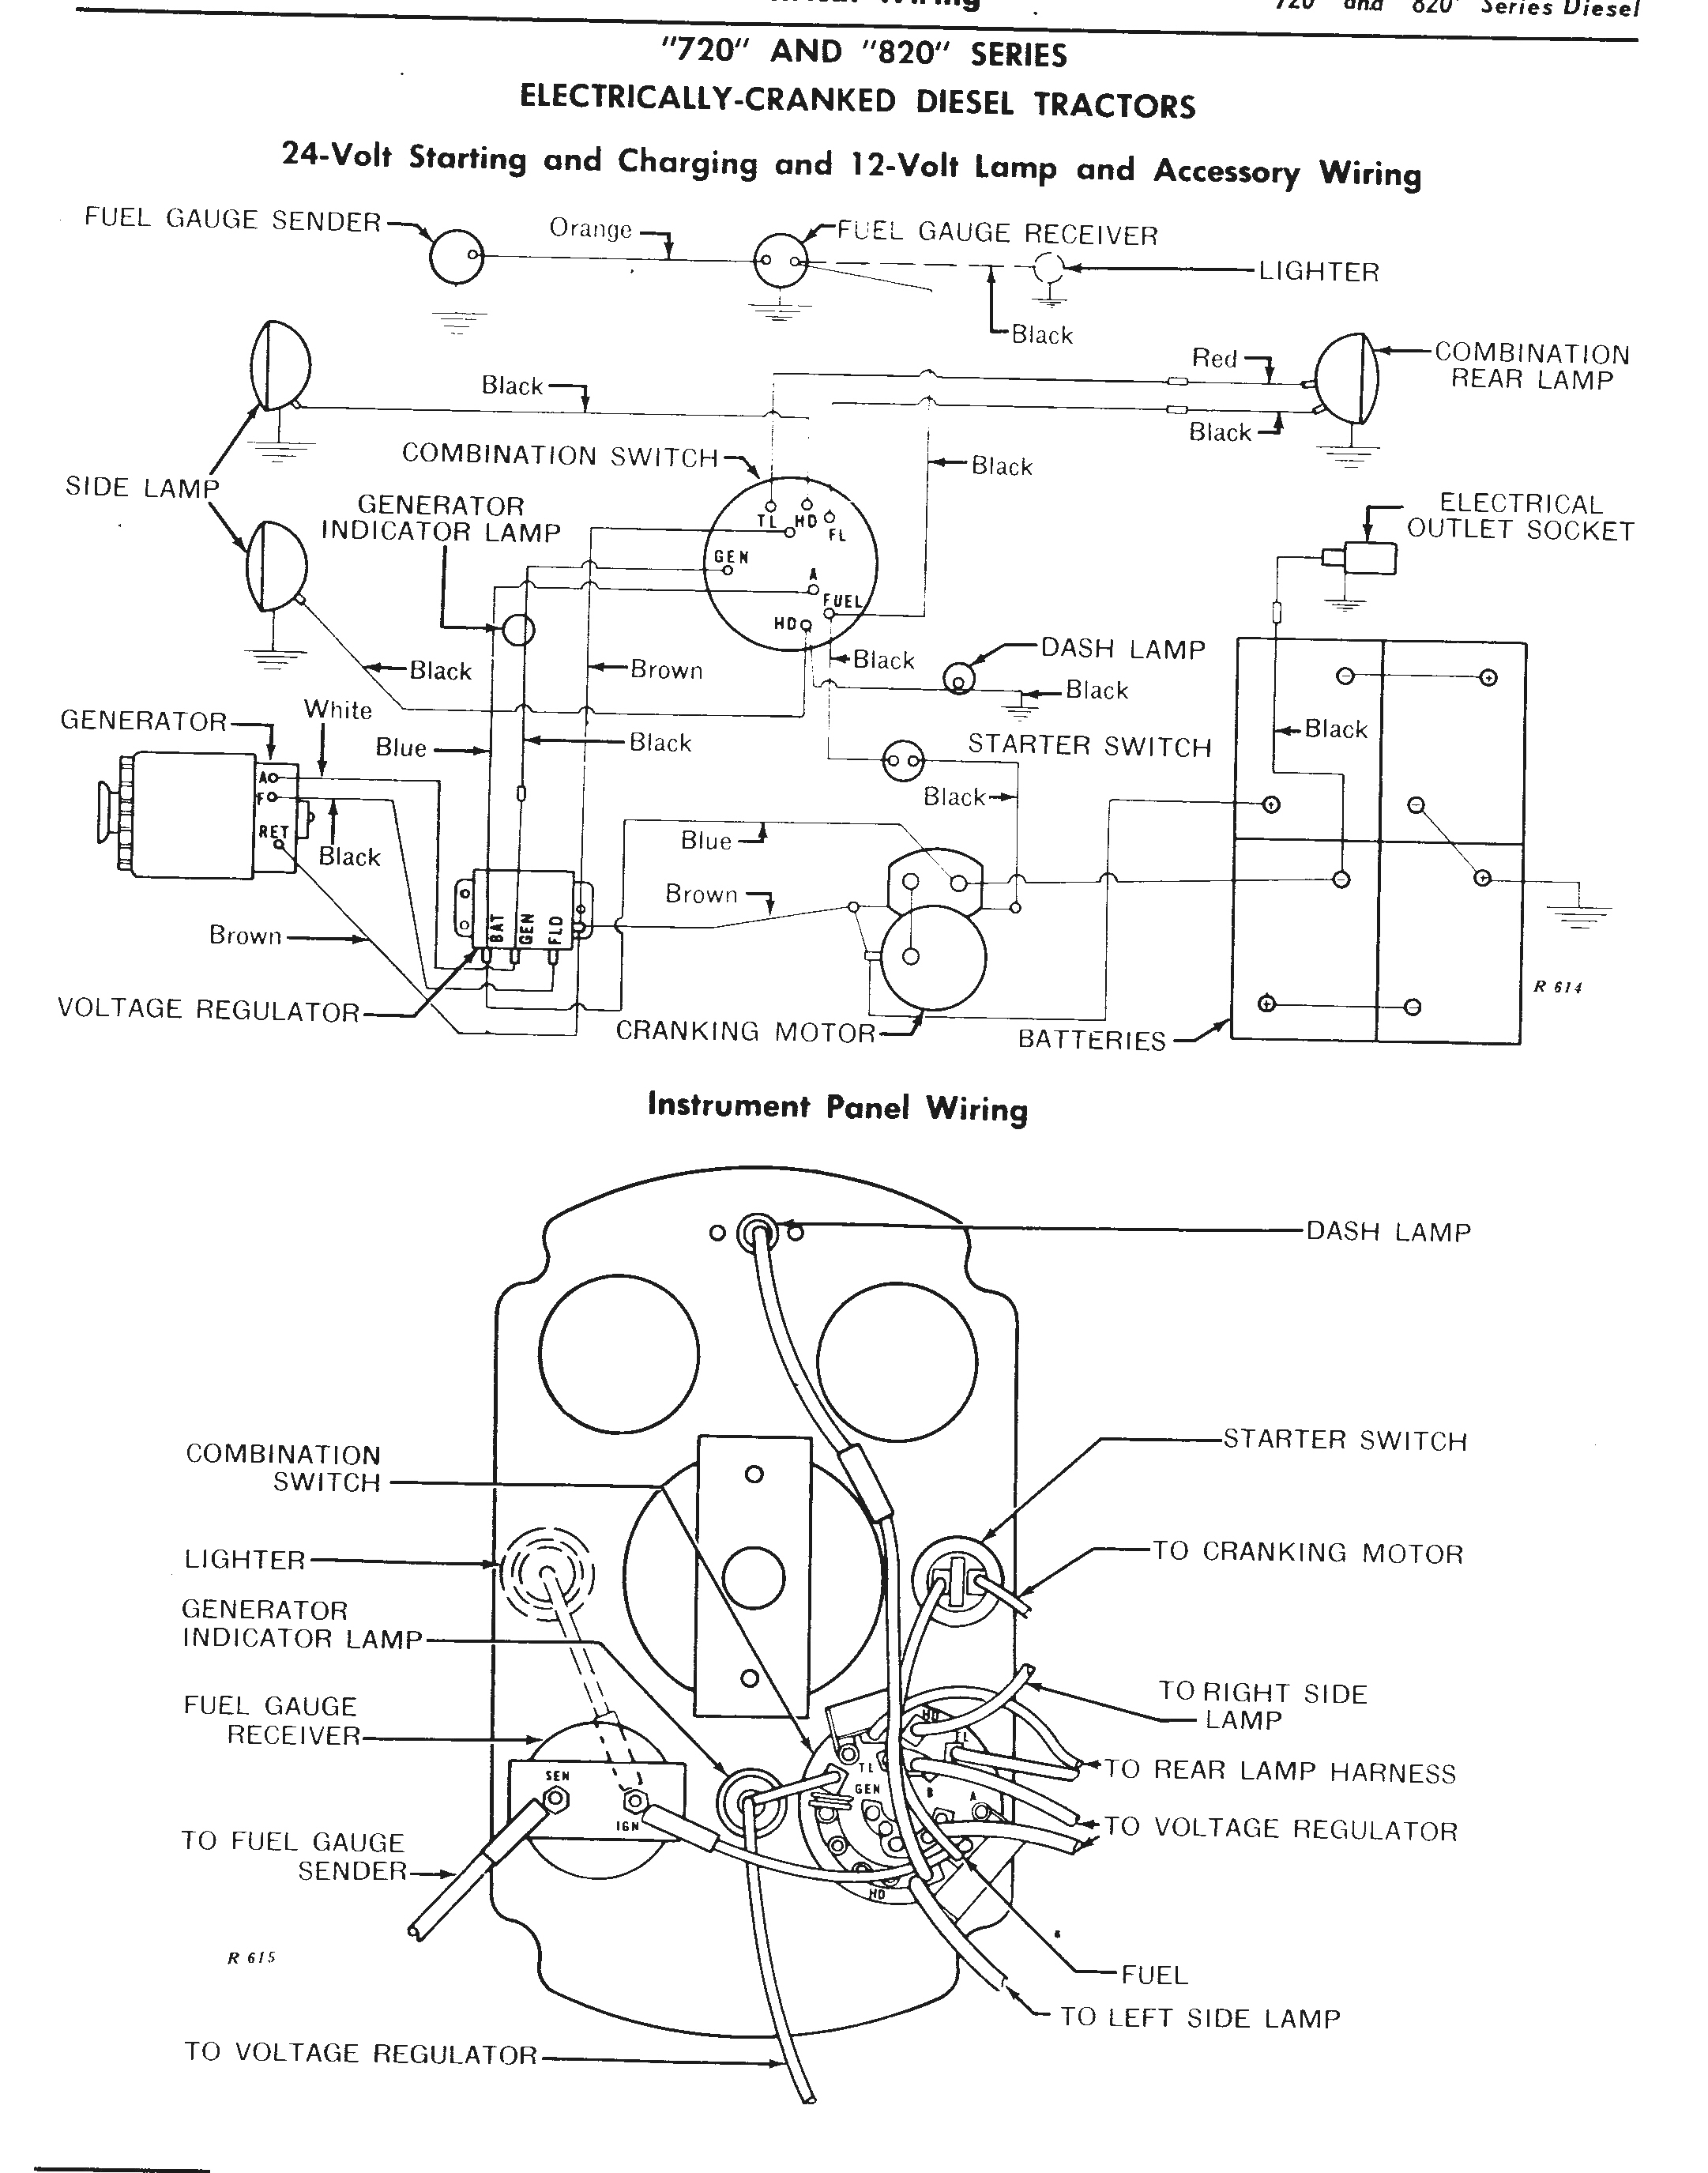 john deere 110 ignition wiring diagram wiring diagramjohn deere 3020 ignition wiring diagram free download wiring